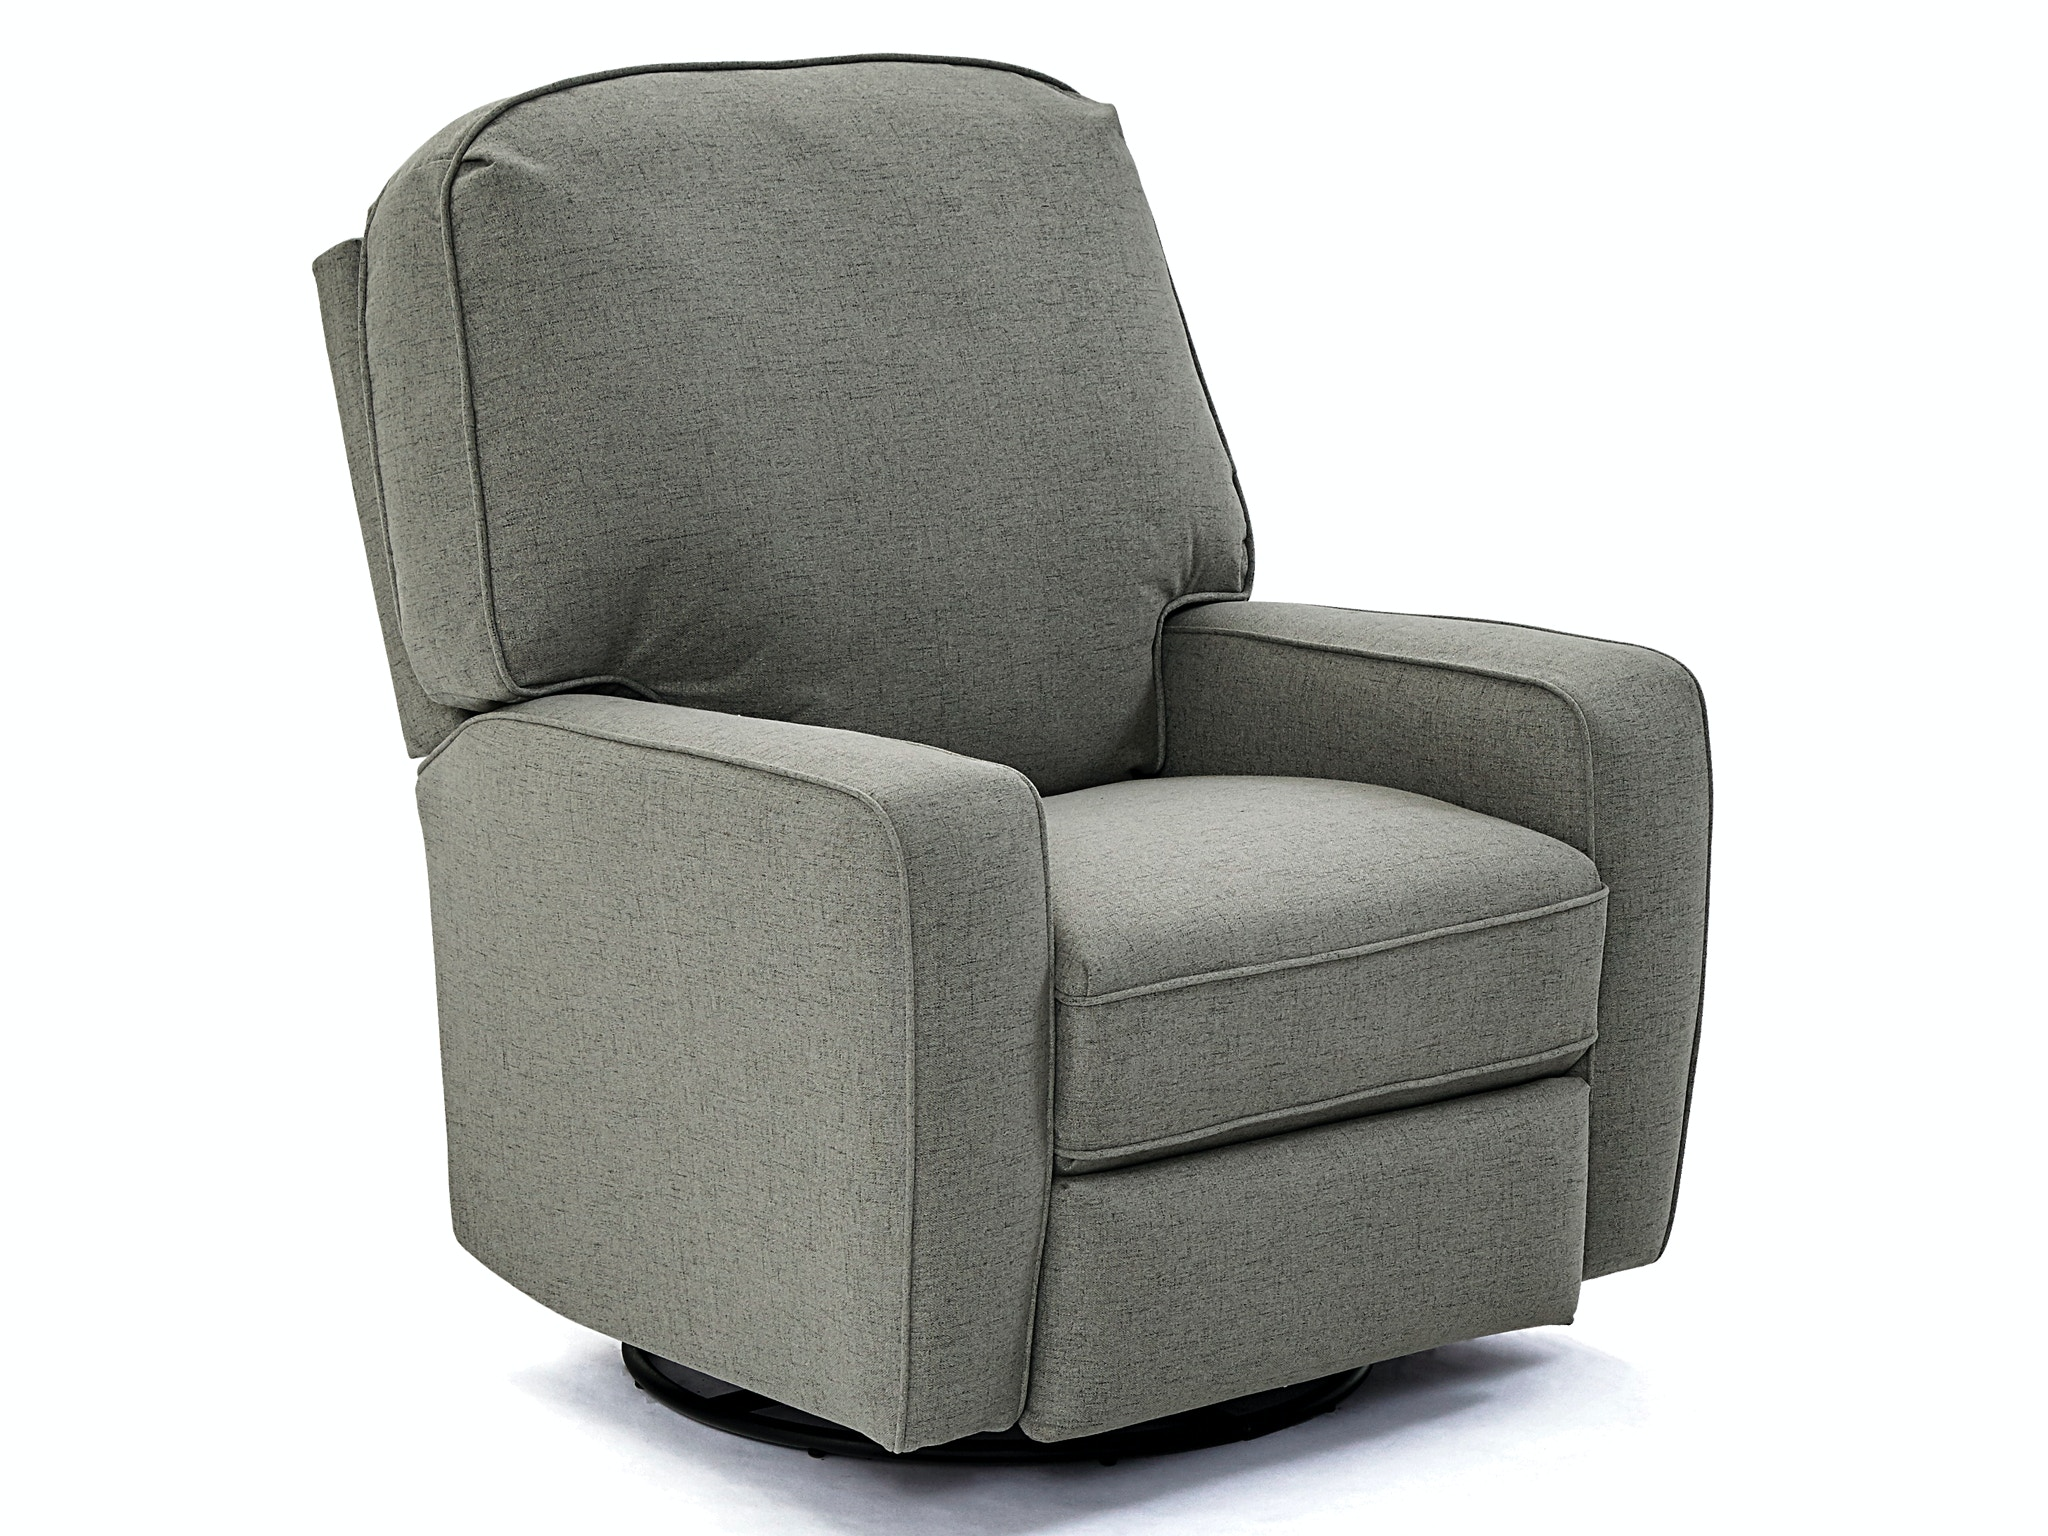 besthf com chairs jean prouve chair dimensions bilana swivel glider recliner